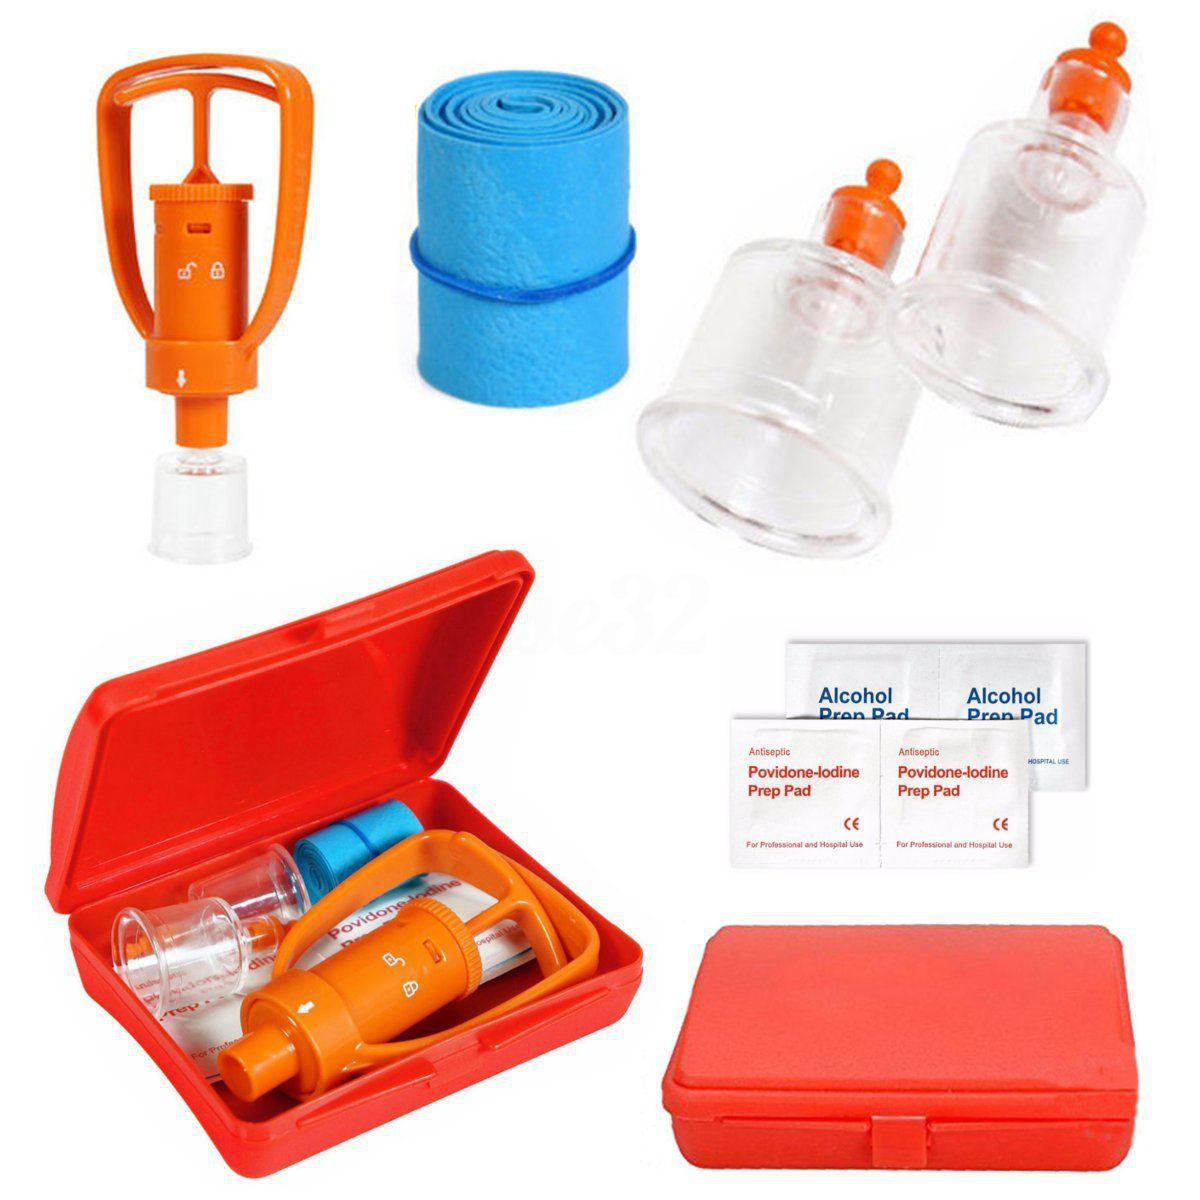 Venom Extractor Pump First Aid Safety Kit Emergency Snake Bite Outdoor Camping Survival Tool SOS For Wild Vipers Bees Biting